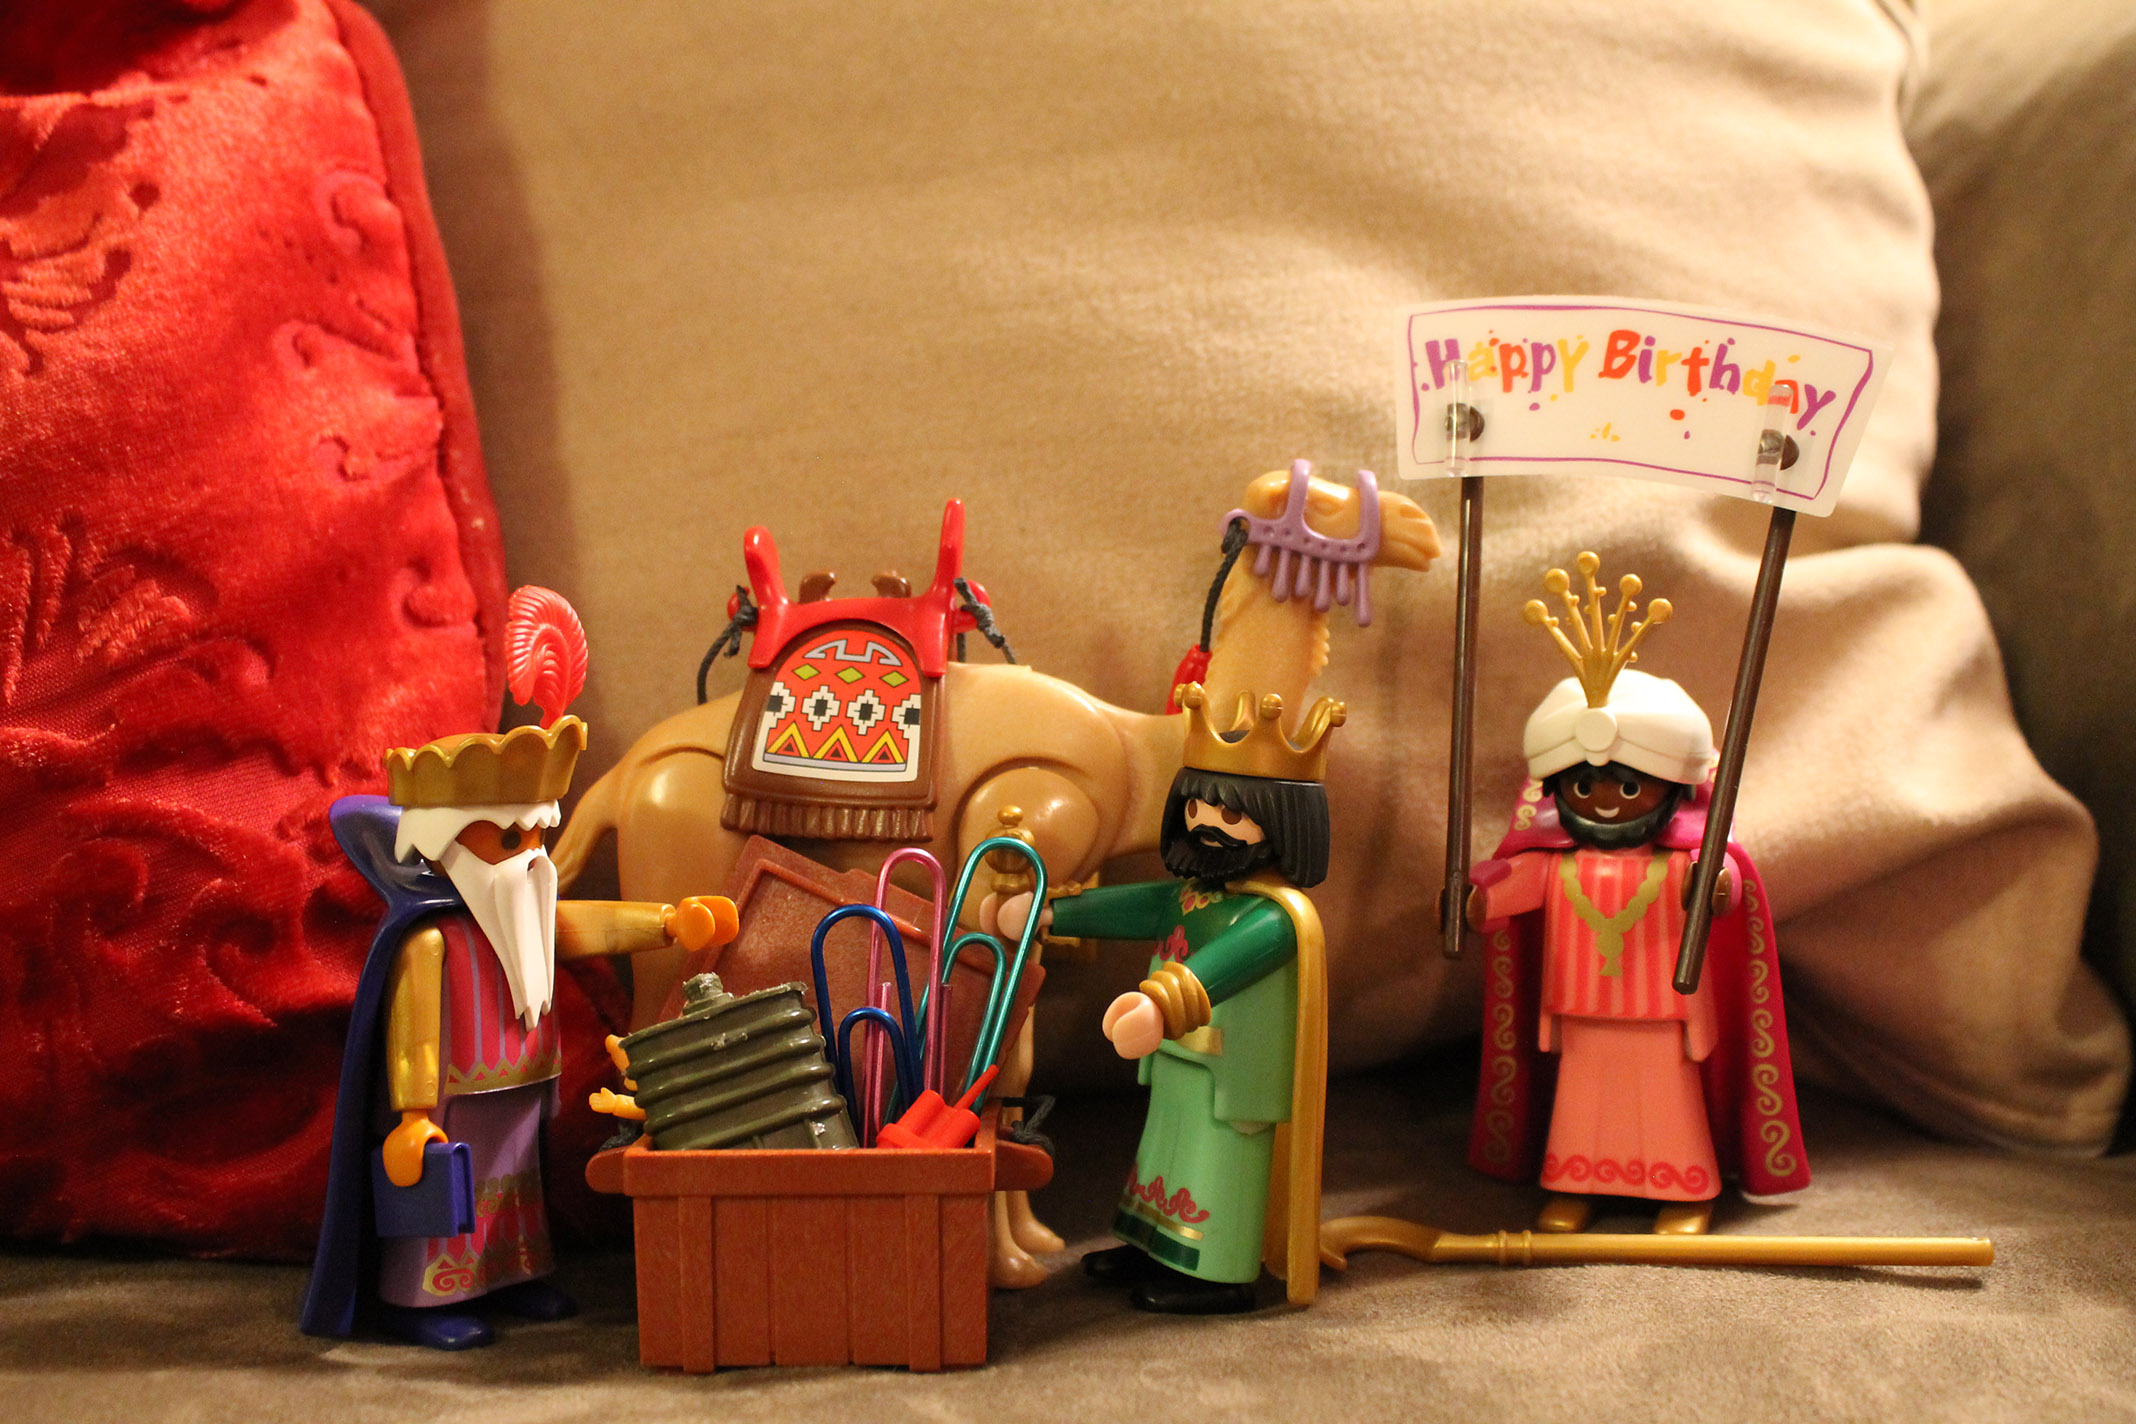 The three wisemen wish my son a happy birthday.